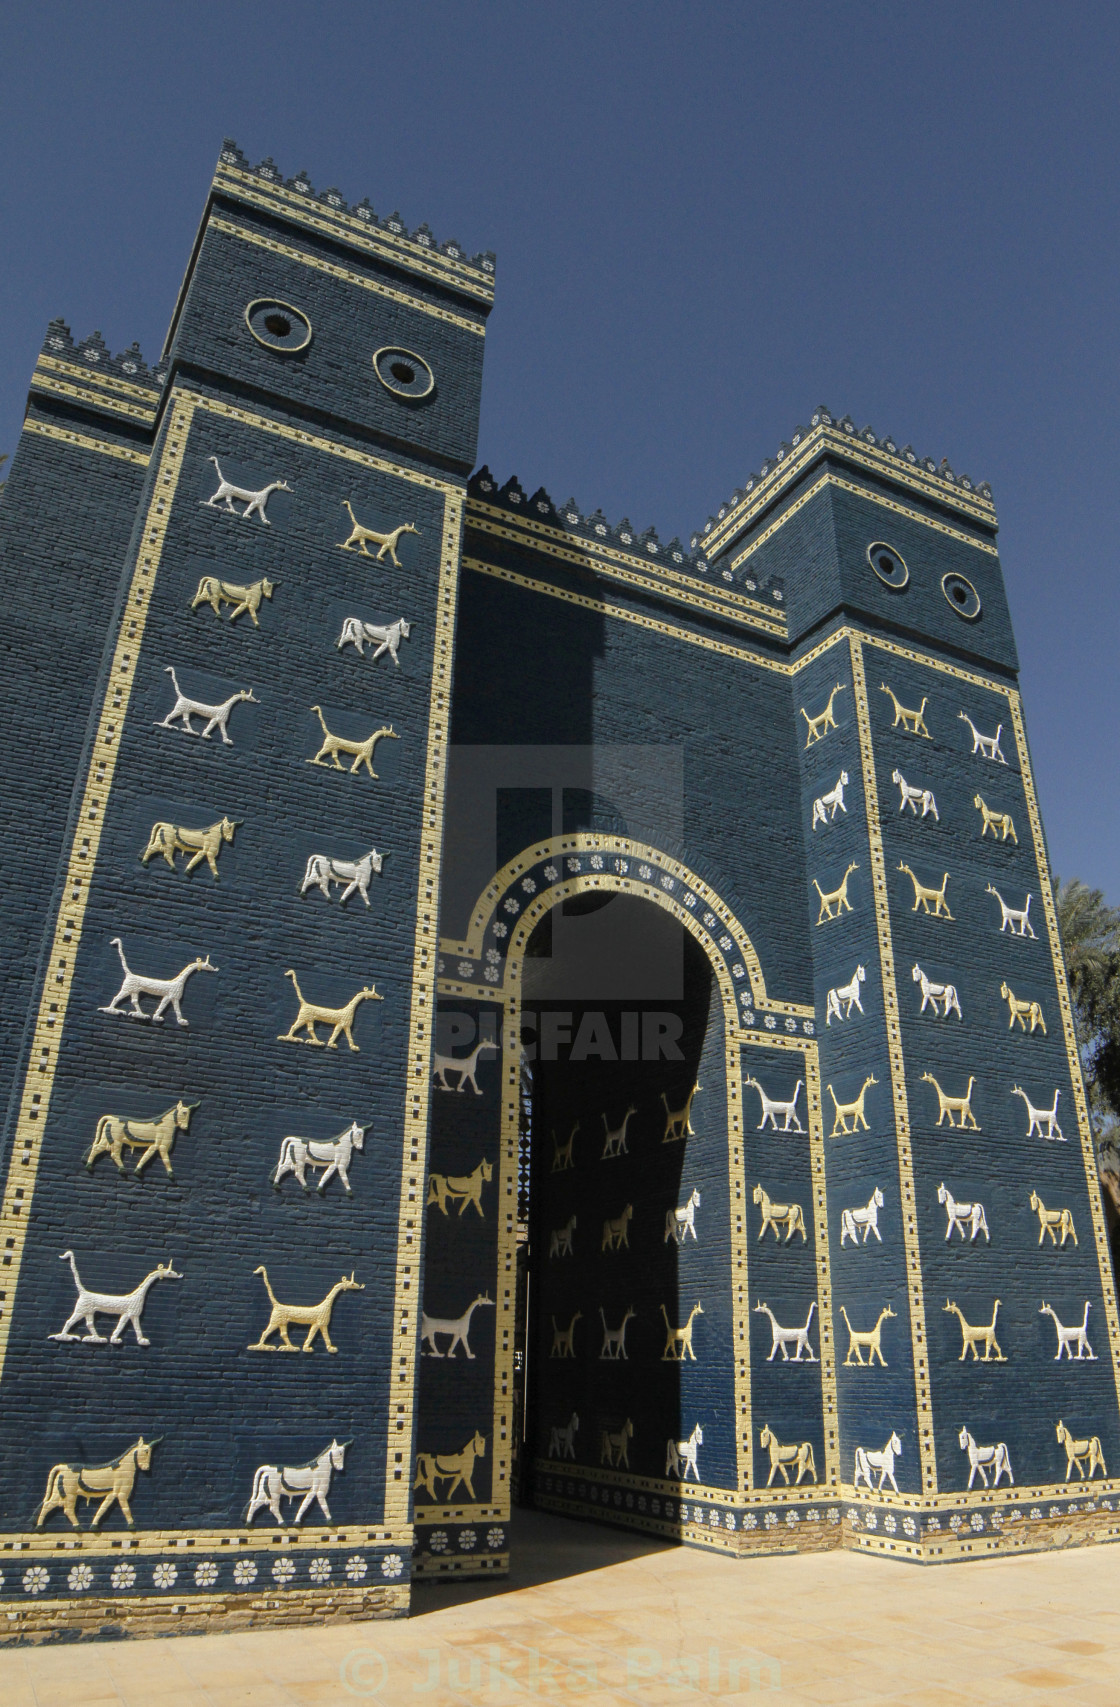 Ancient babylon, iraq license, download or print for £18. 60.